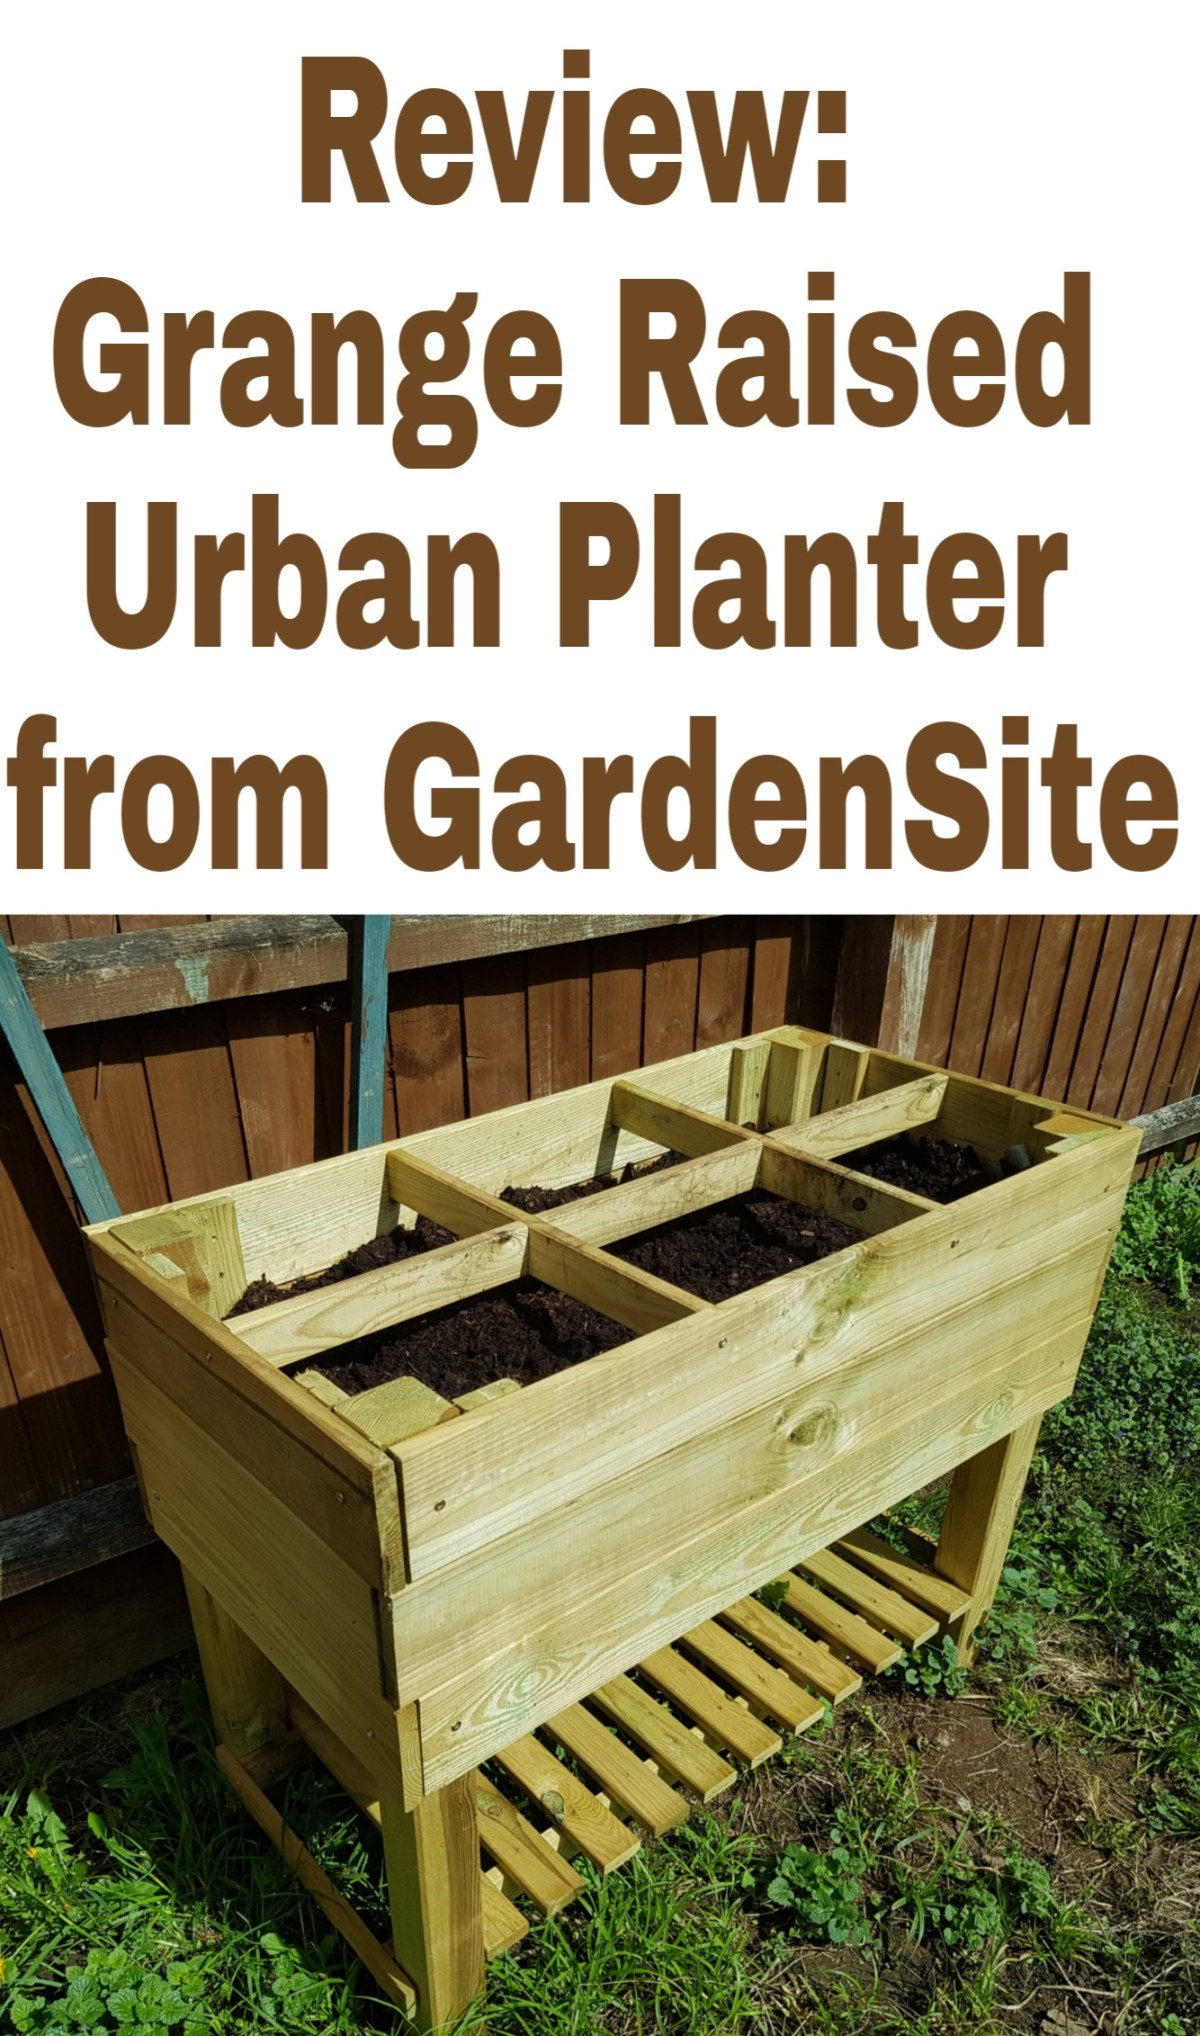 Grange Raised Urban Planter: GardenSite's Gardening Solutions for Small Spaces (Review & Giveaway)